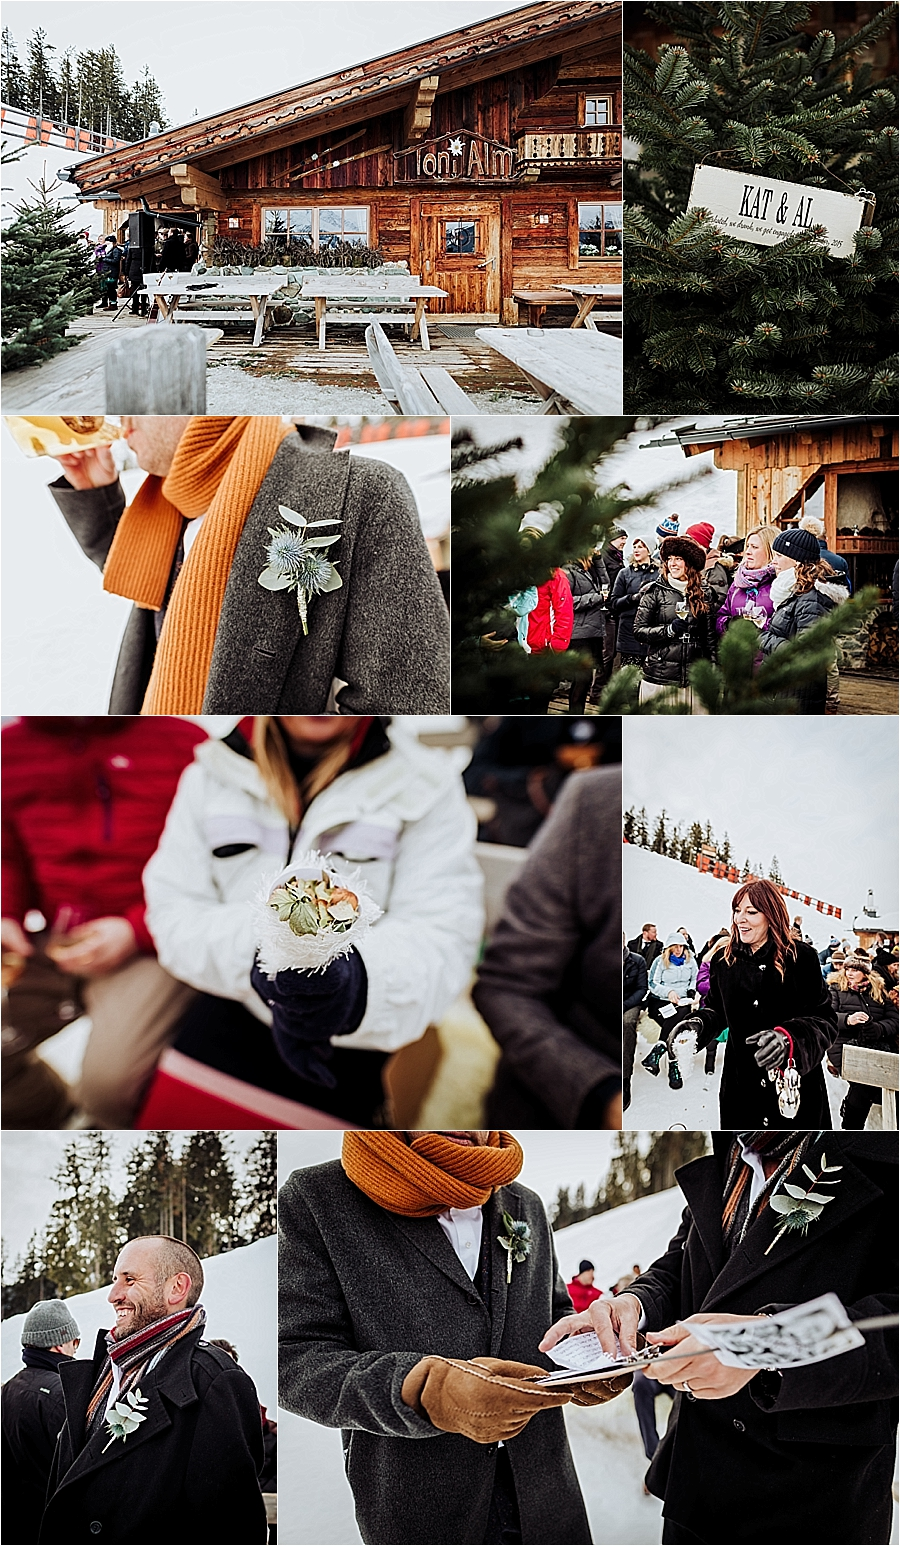 Guests take their seats for a mountain wedding ceremony at the Toni Alm near Kitzbühel in Austria by Wild Connections Photography